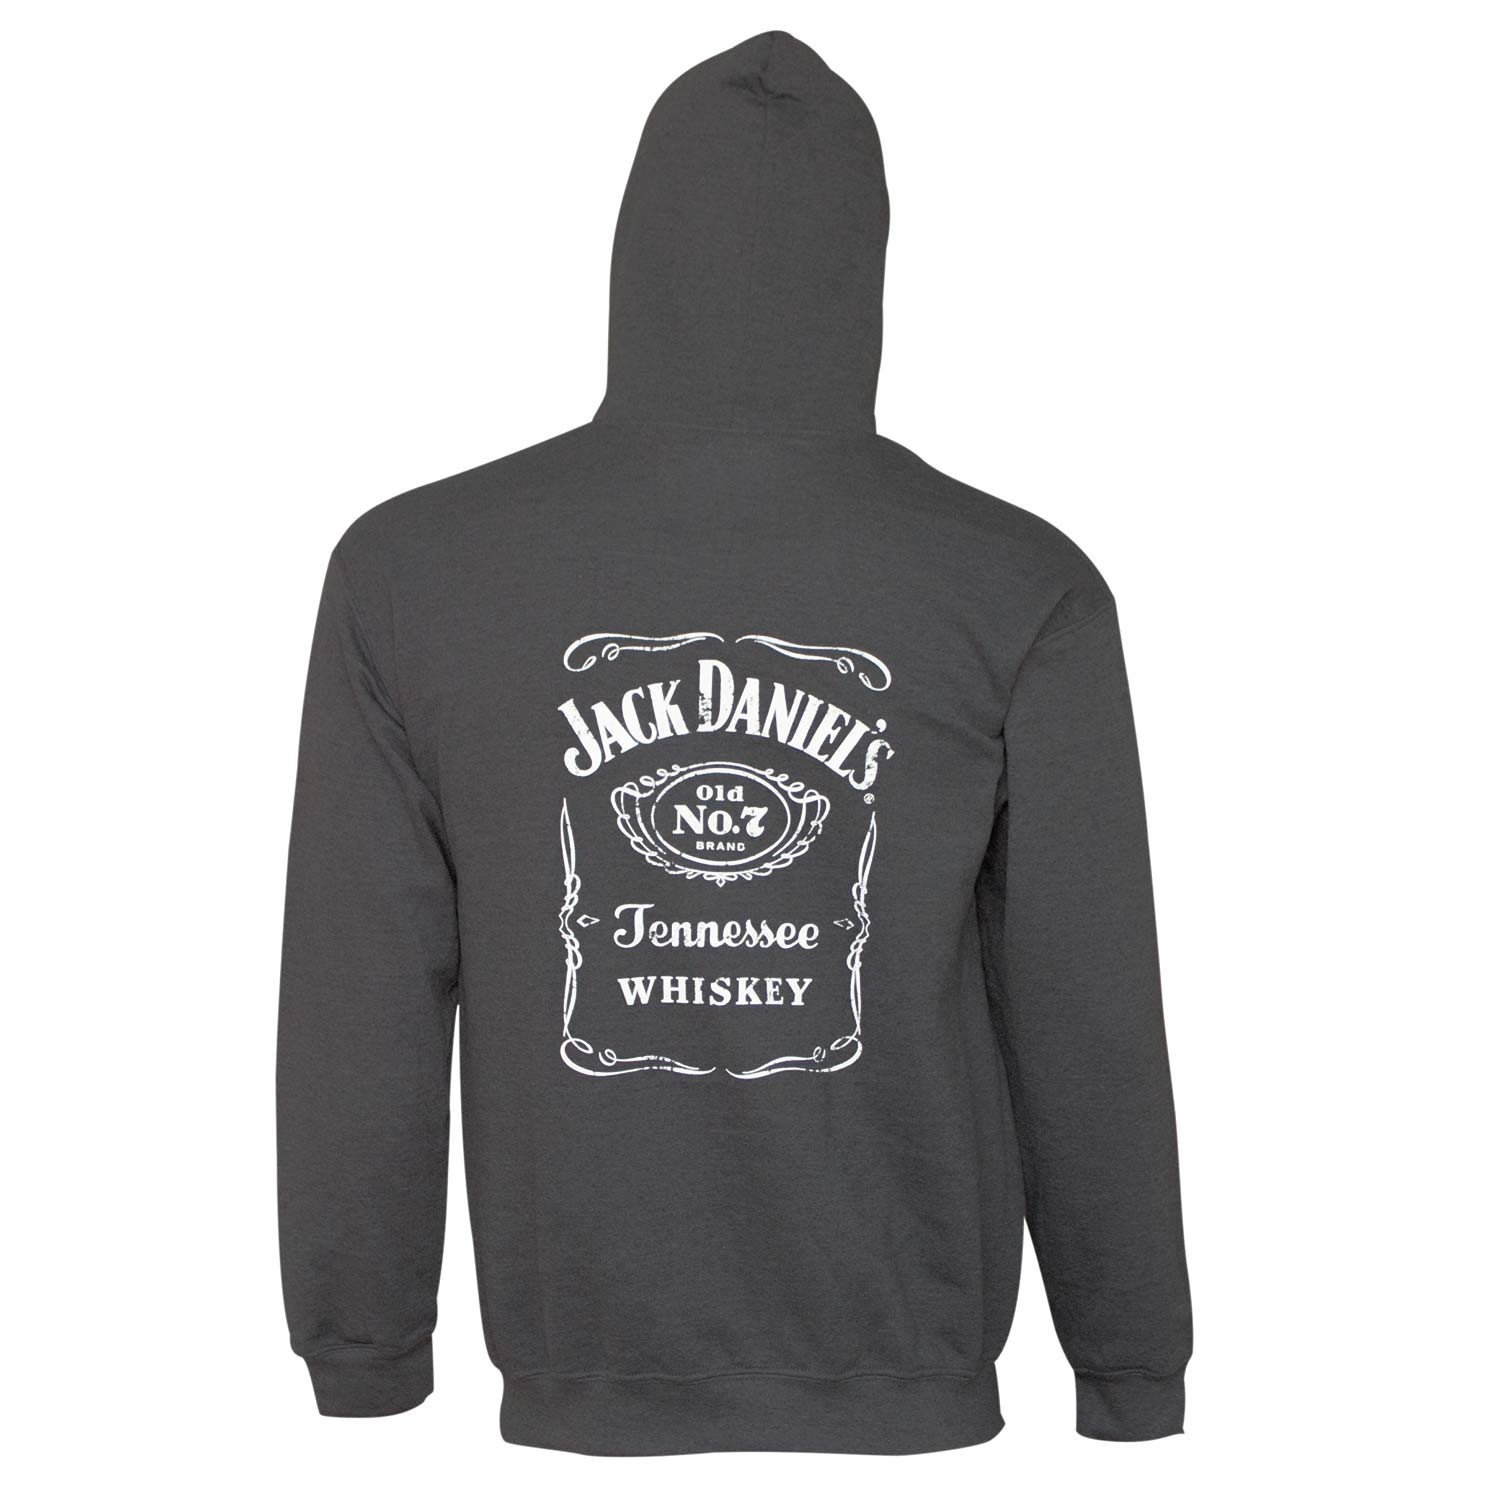 Jack Daniels Charcoal Bottle Label Hoodie